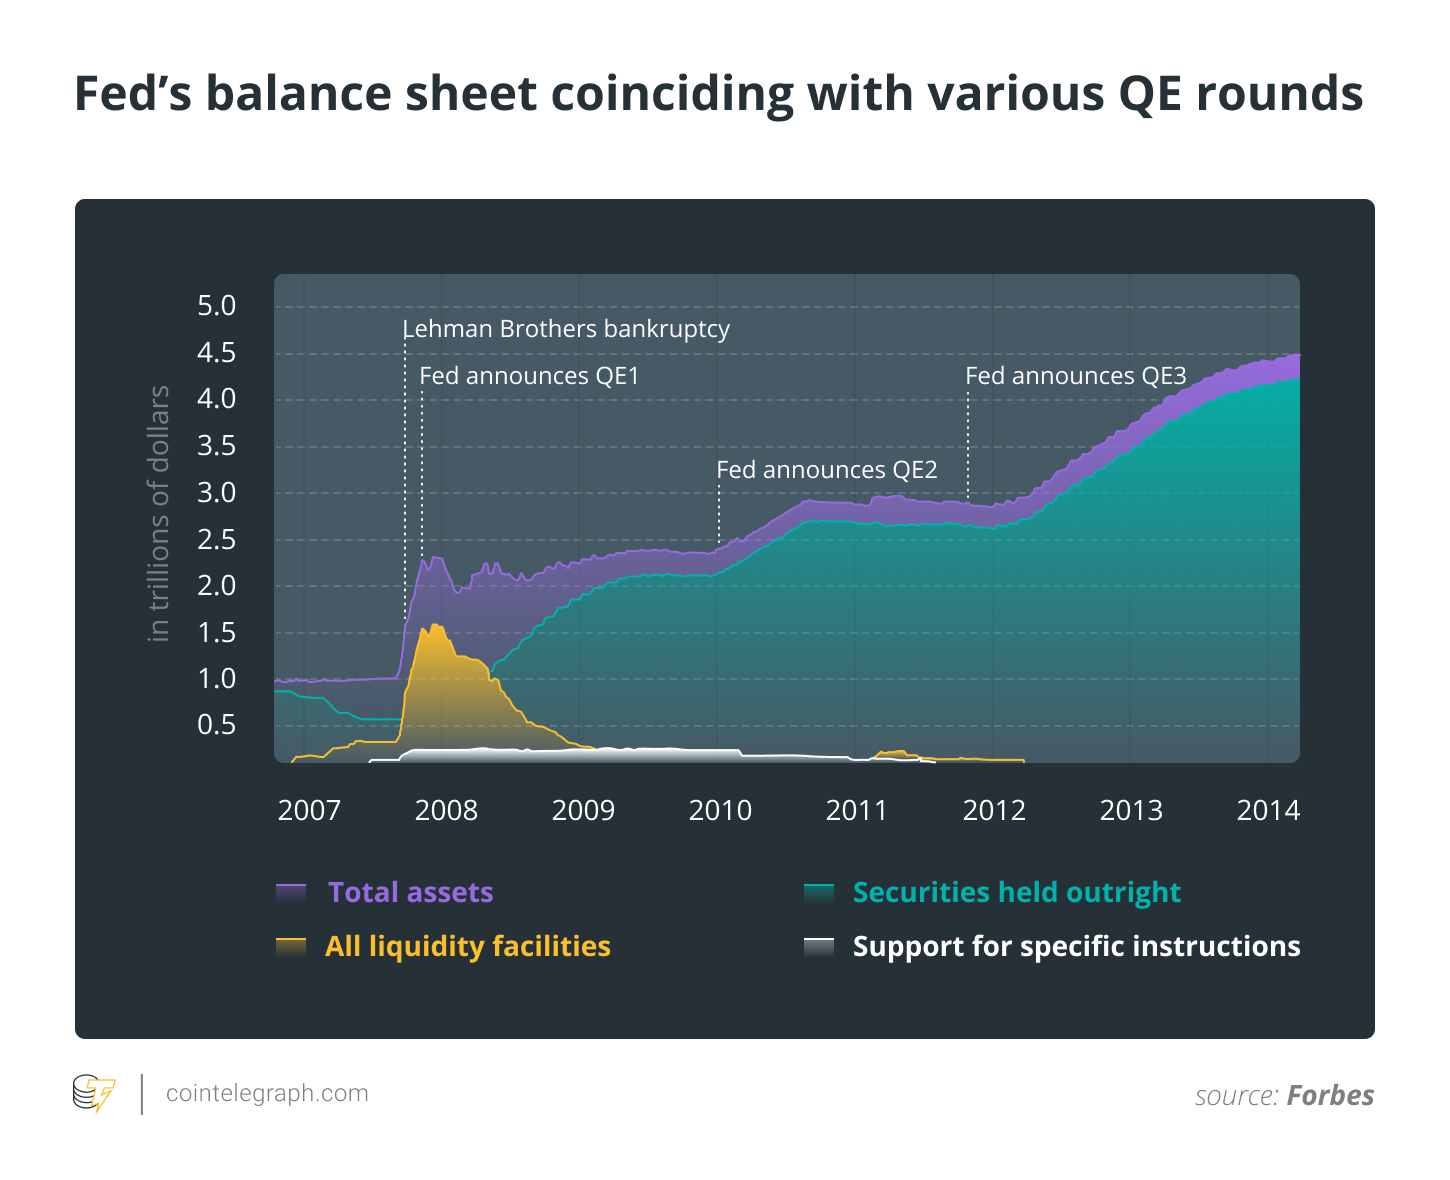 Fed's balance sheet coinciding with various QE rounds